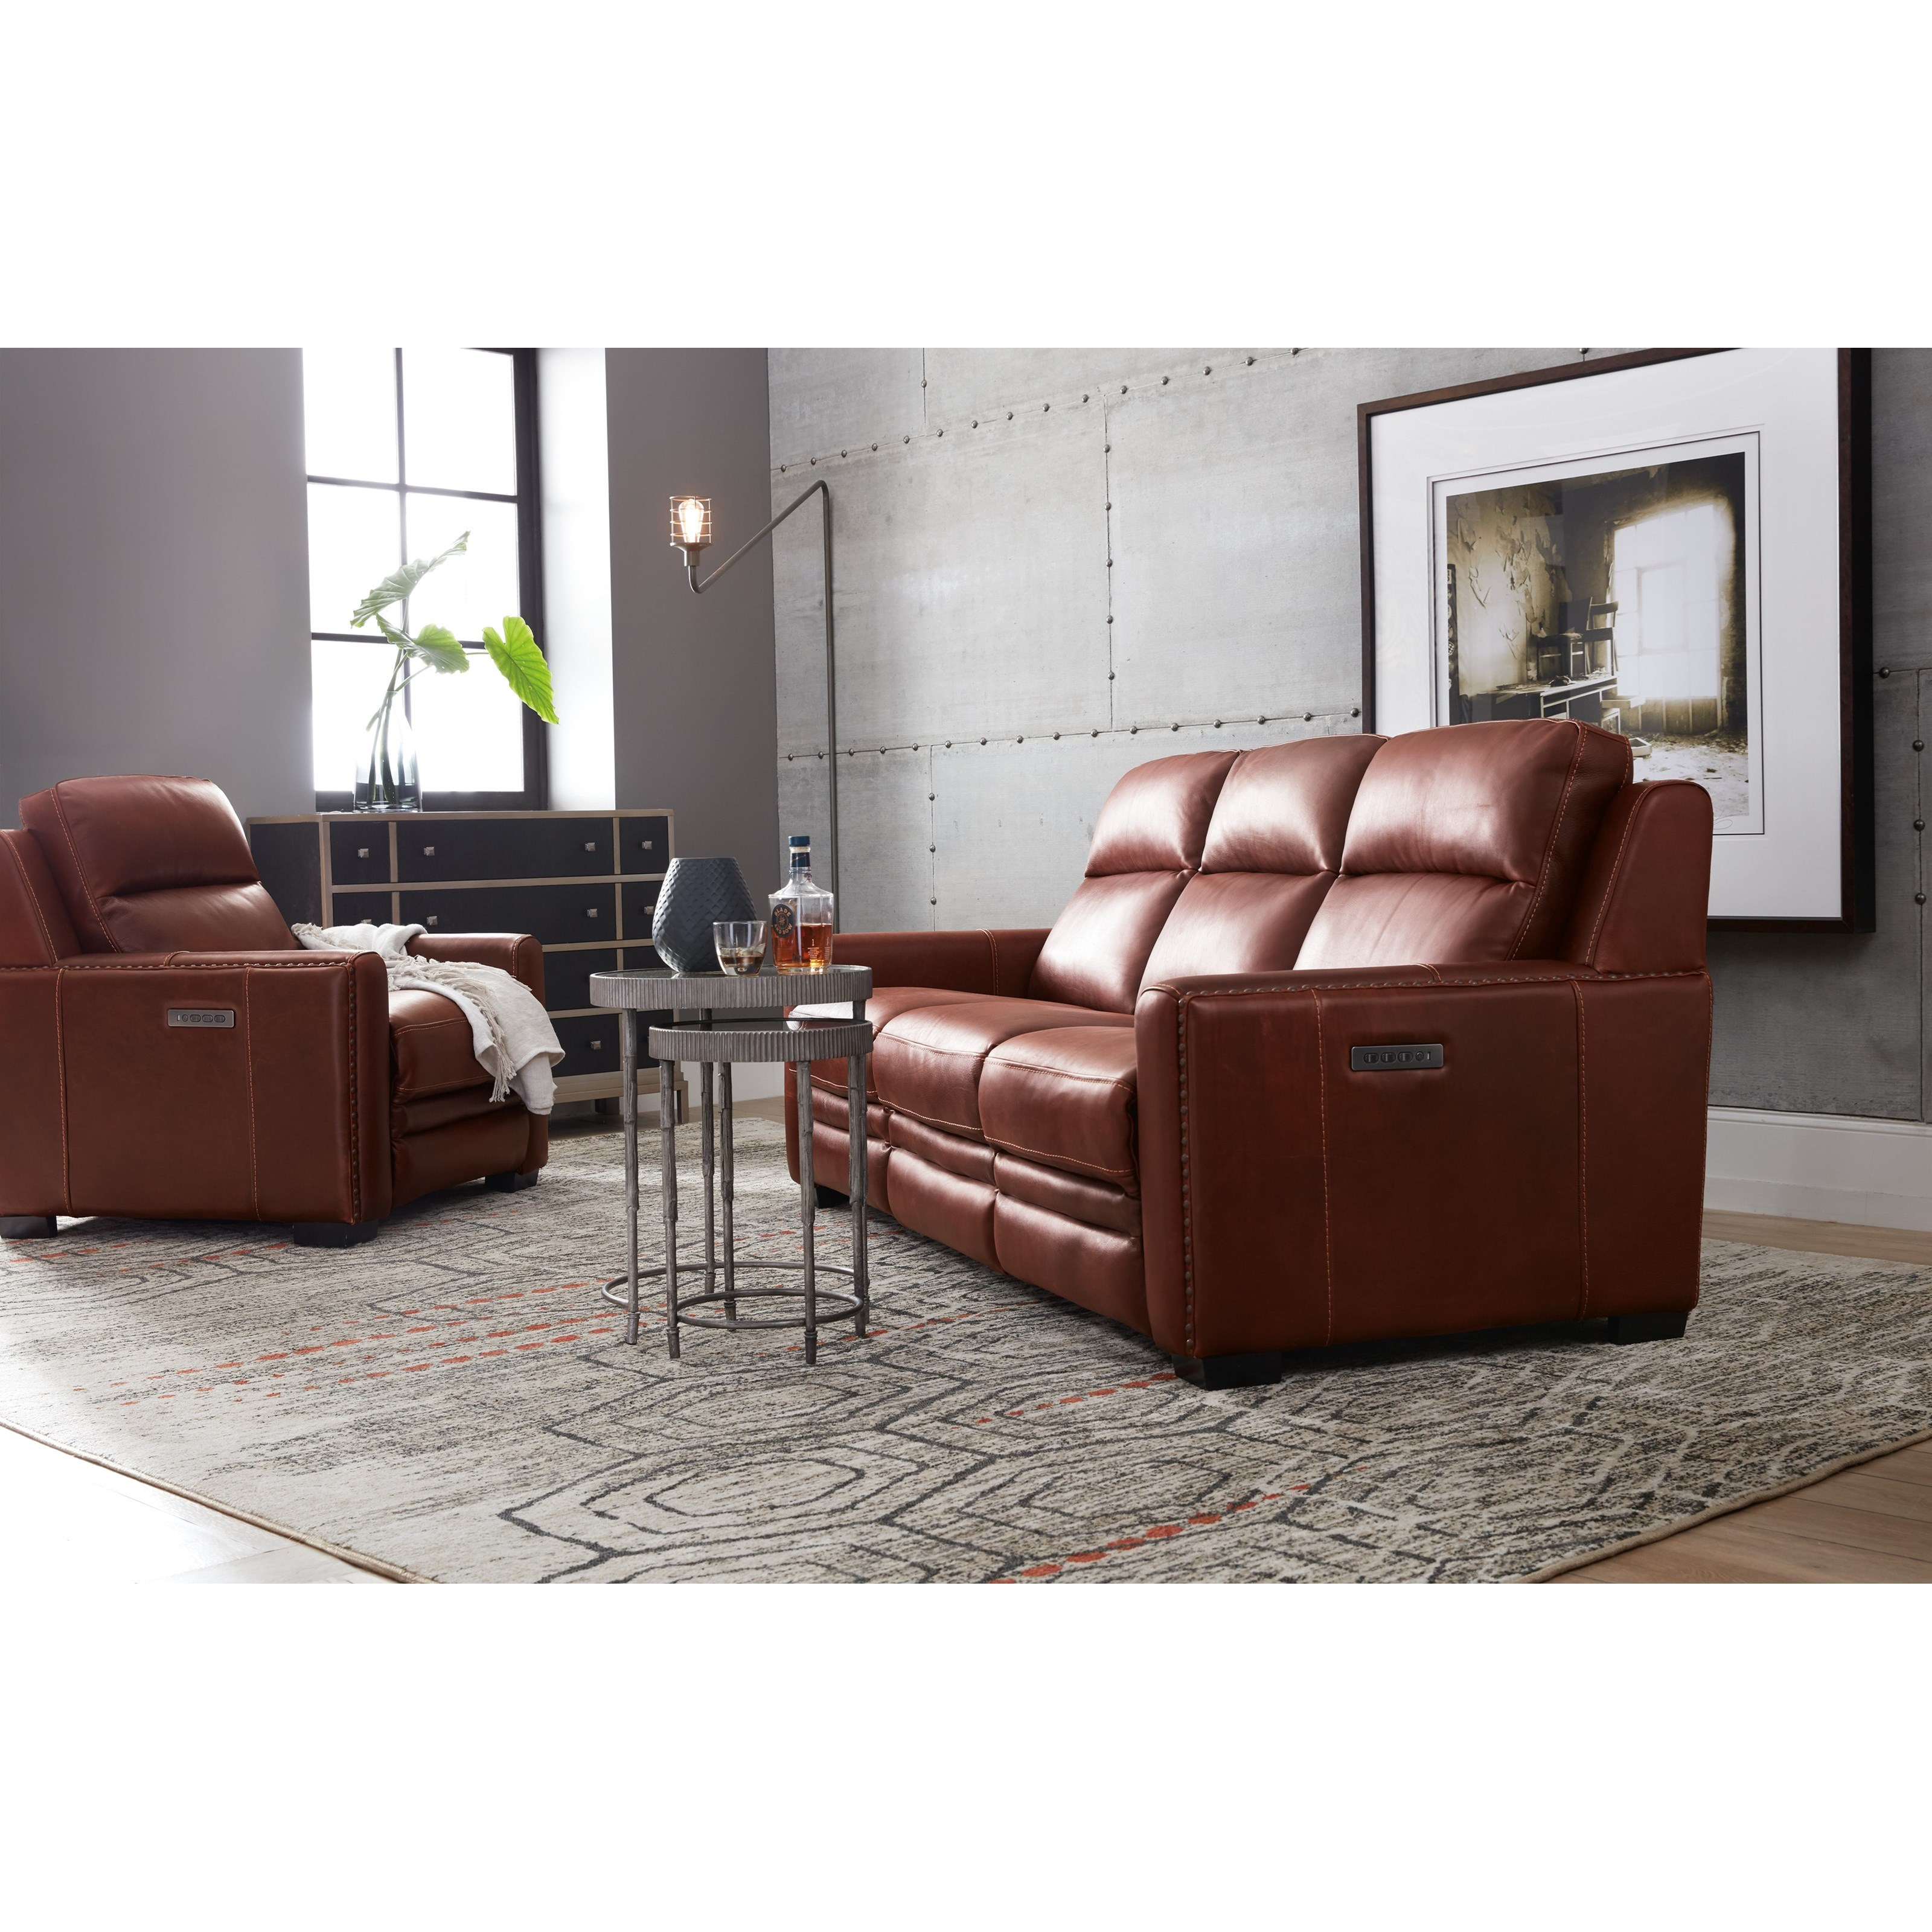 Lincoln Reclining Living Room Group by Hooker Furniture at Story & Lee Furniture